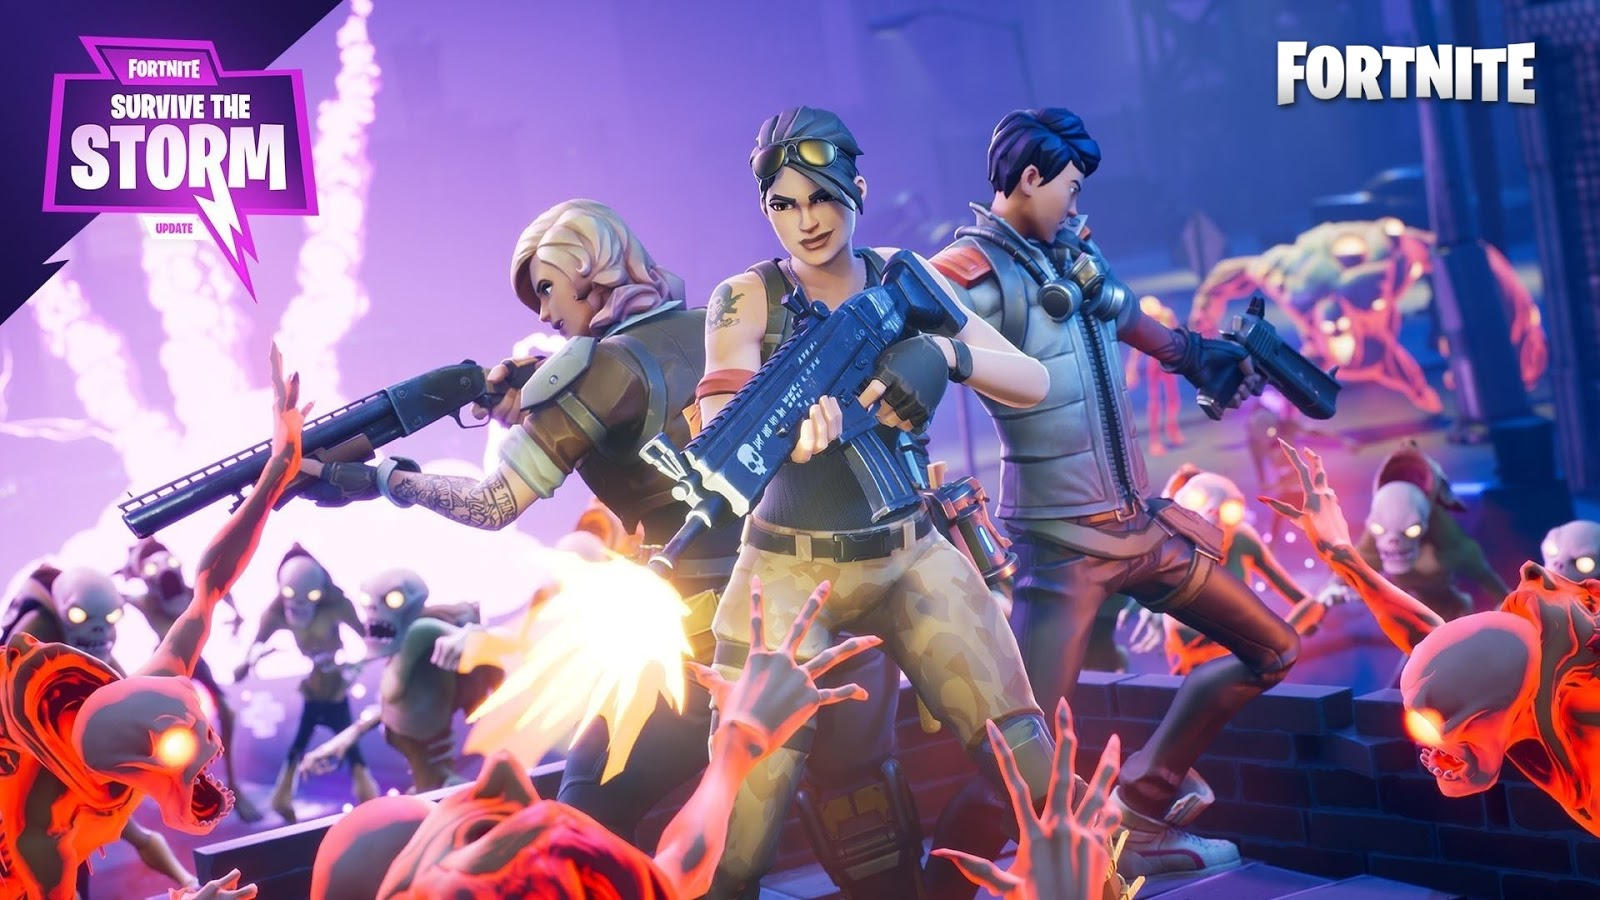 Cool 15 Fortnite Wallpapers Hd 1080p Coloring Pages For